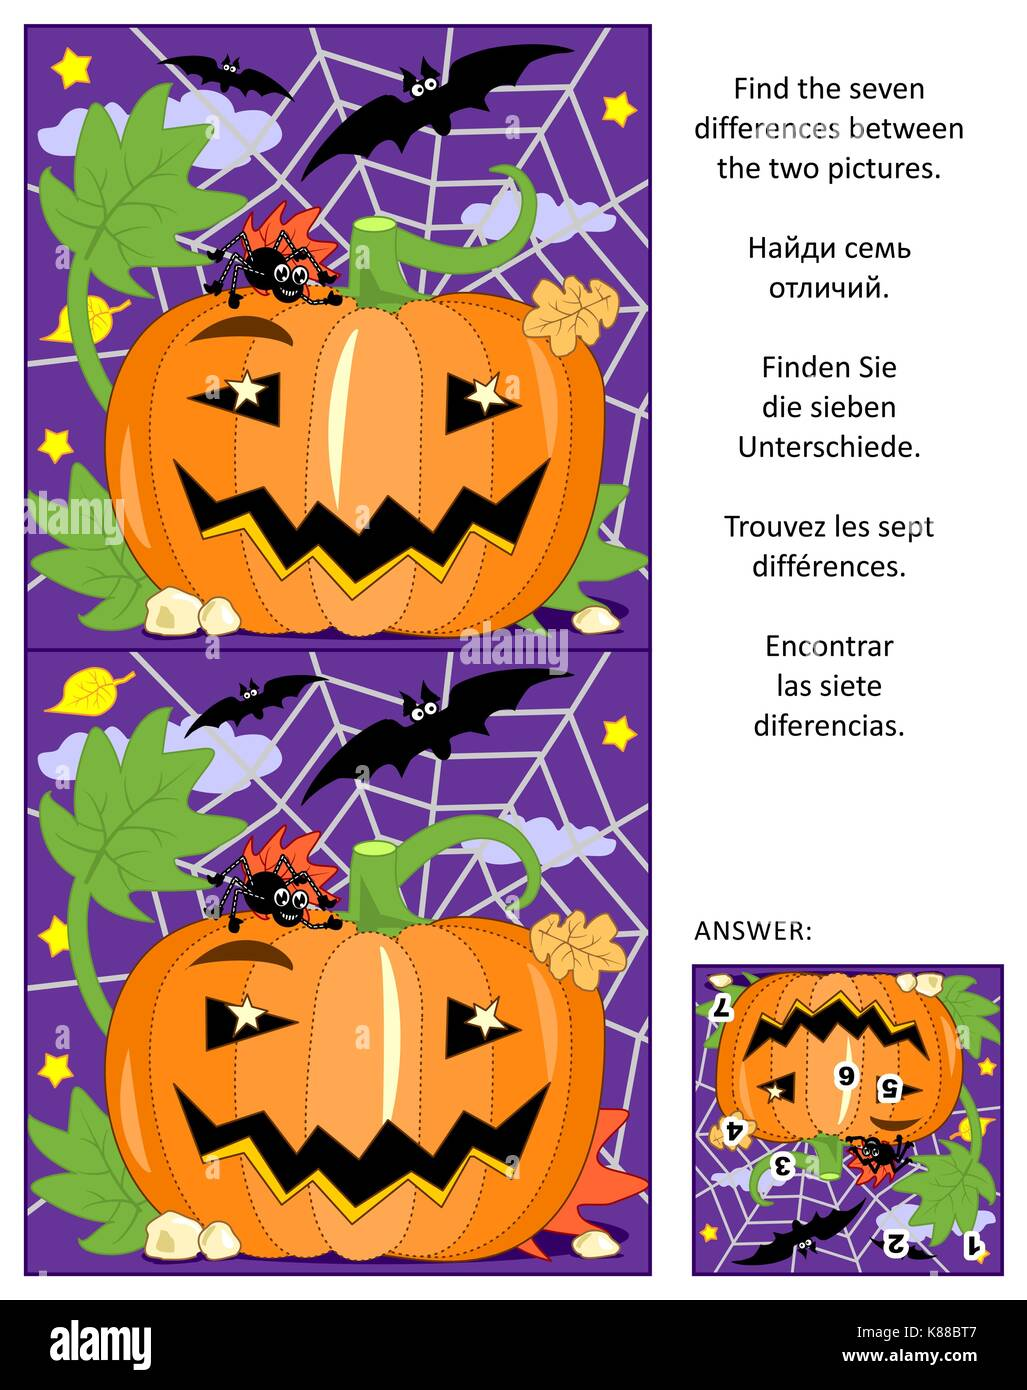 Halloween themed visual puzzle: Find the seven differences between the two pictures of pumpkin, bats and spider. - Stock Image